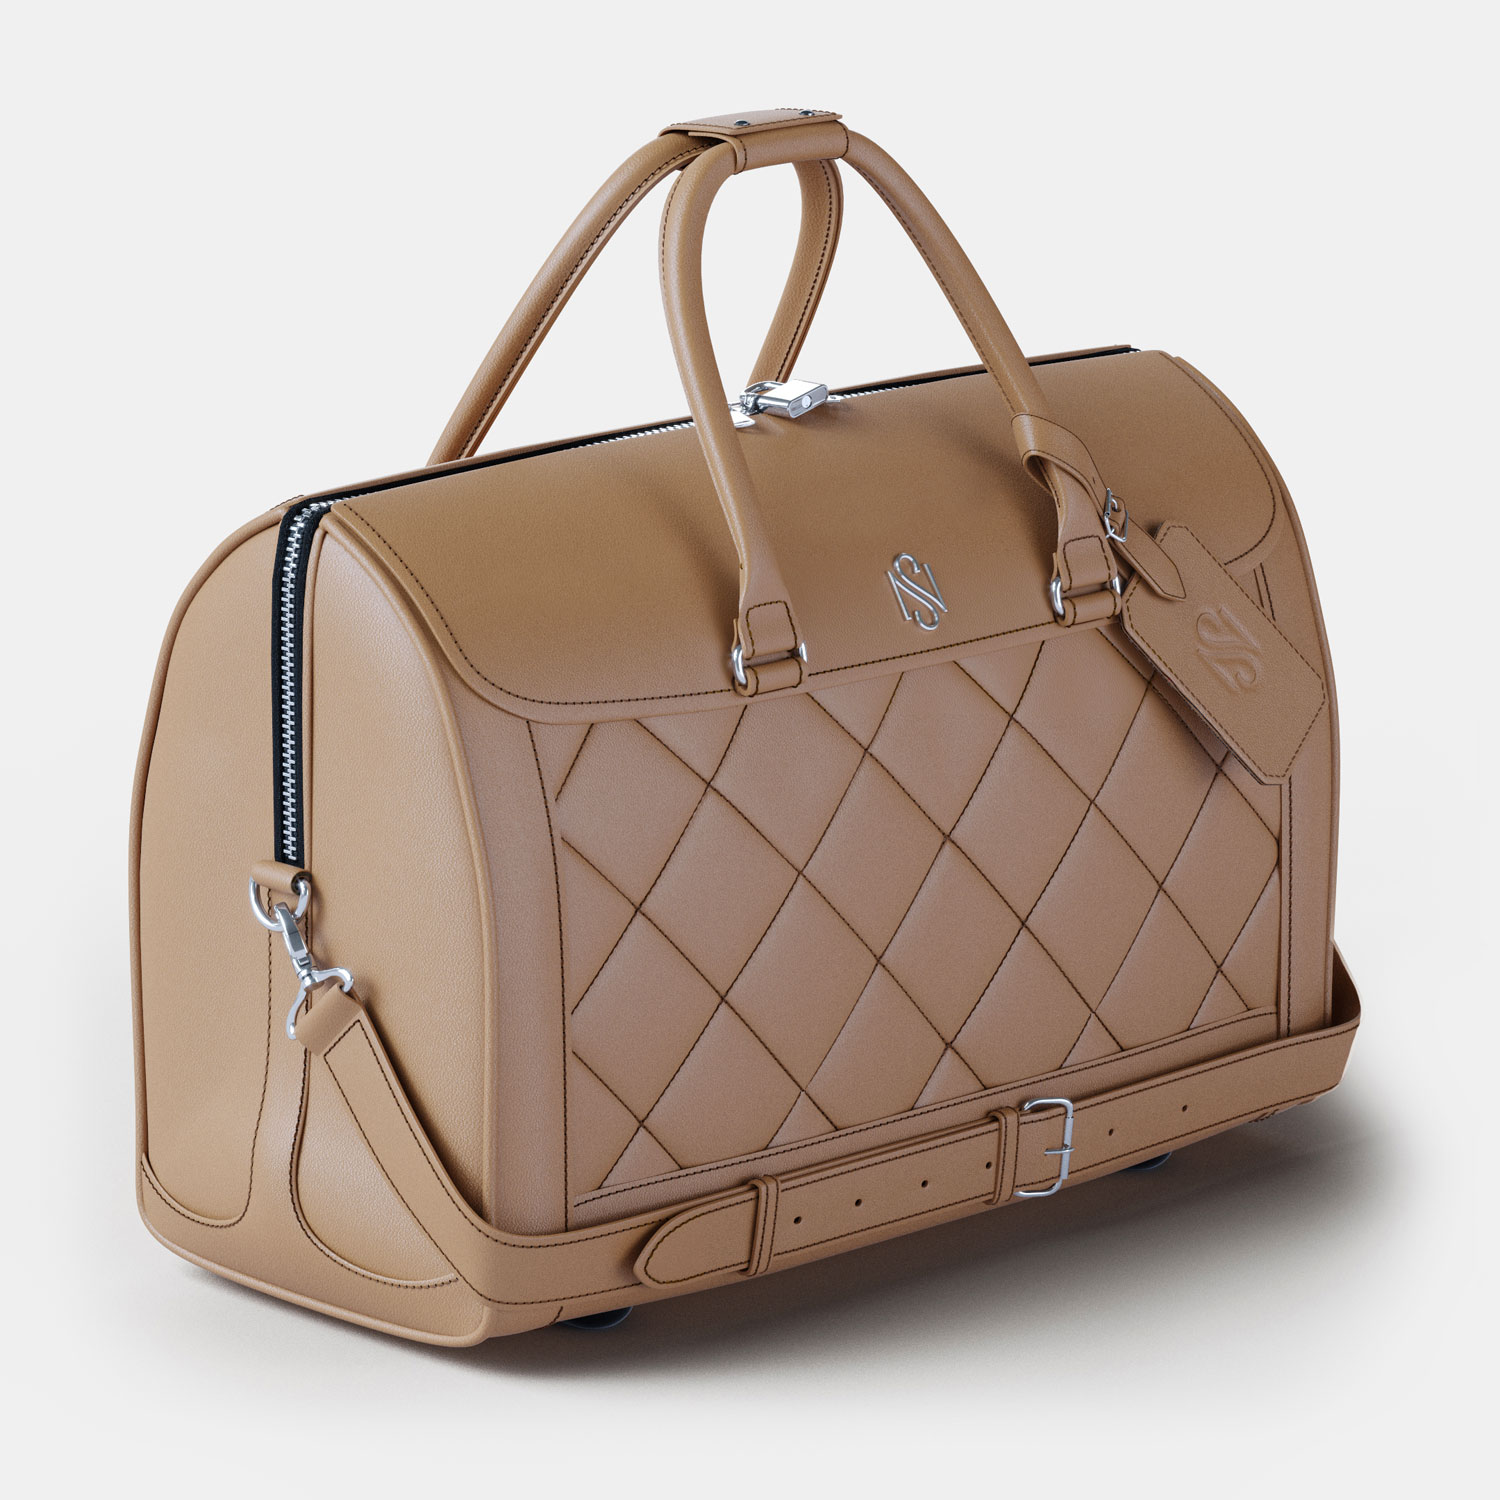 A Soulful Journey into the World of Luxury Luggage 4